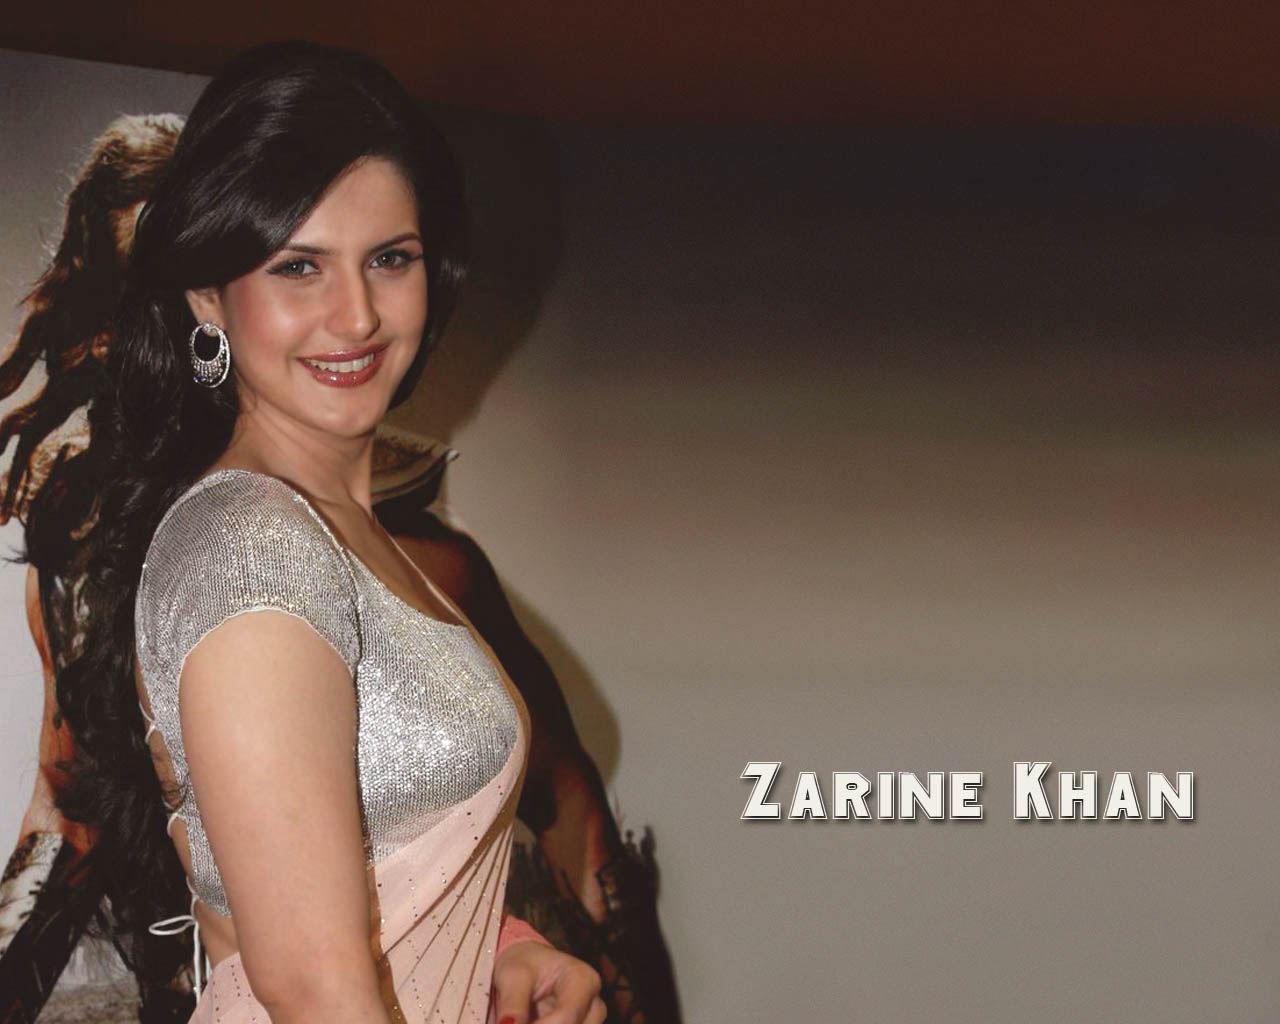 Zarine Khan Wallpapers Cute Beautifull